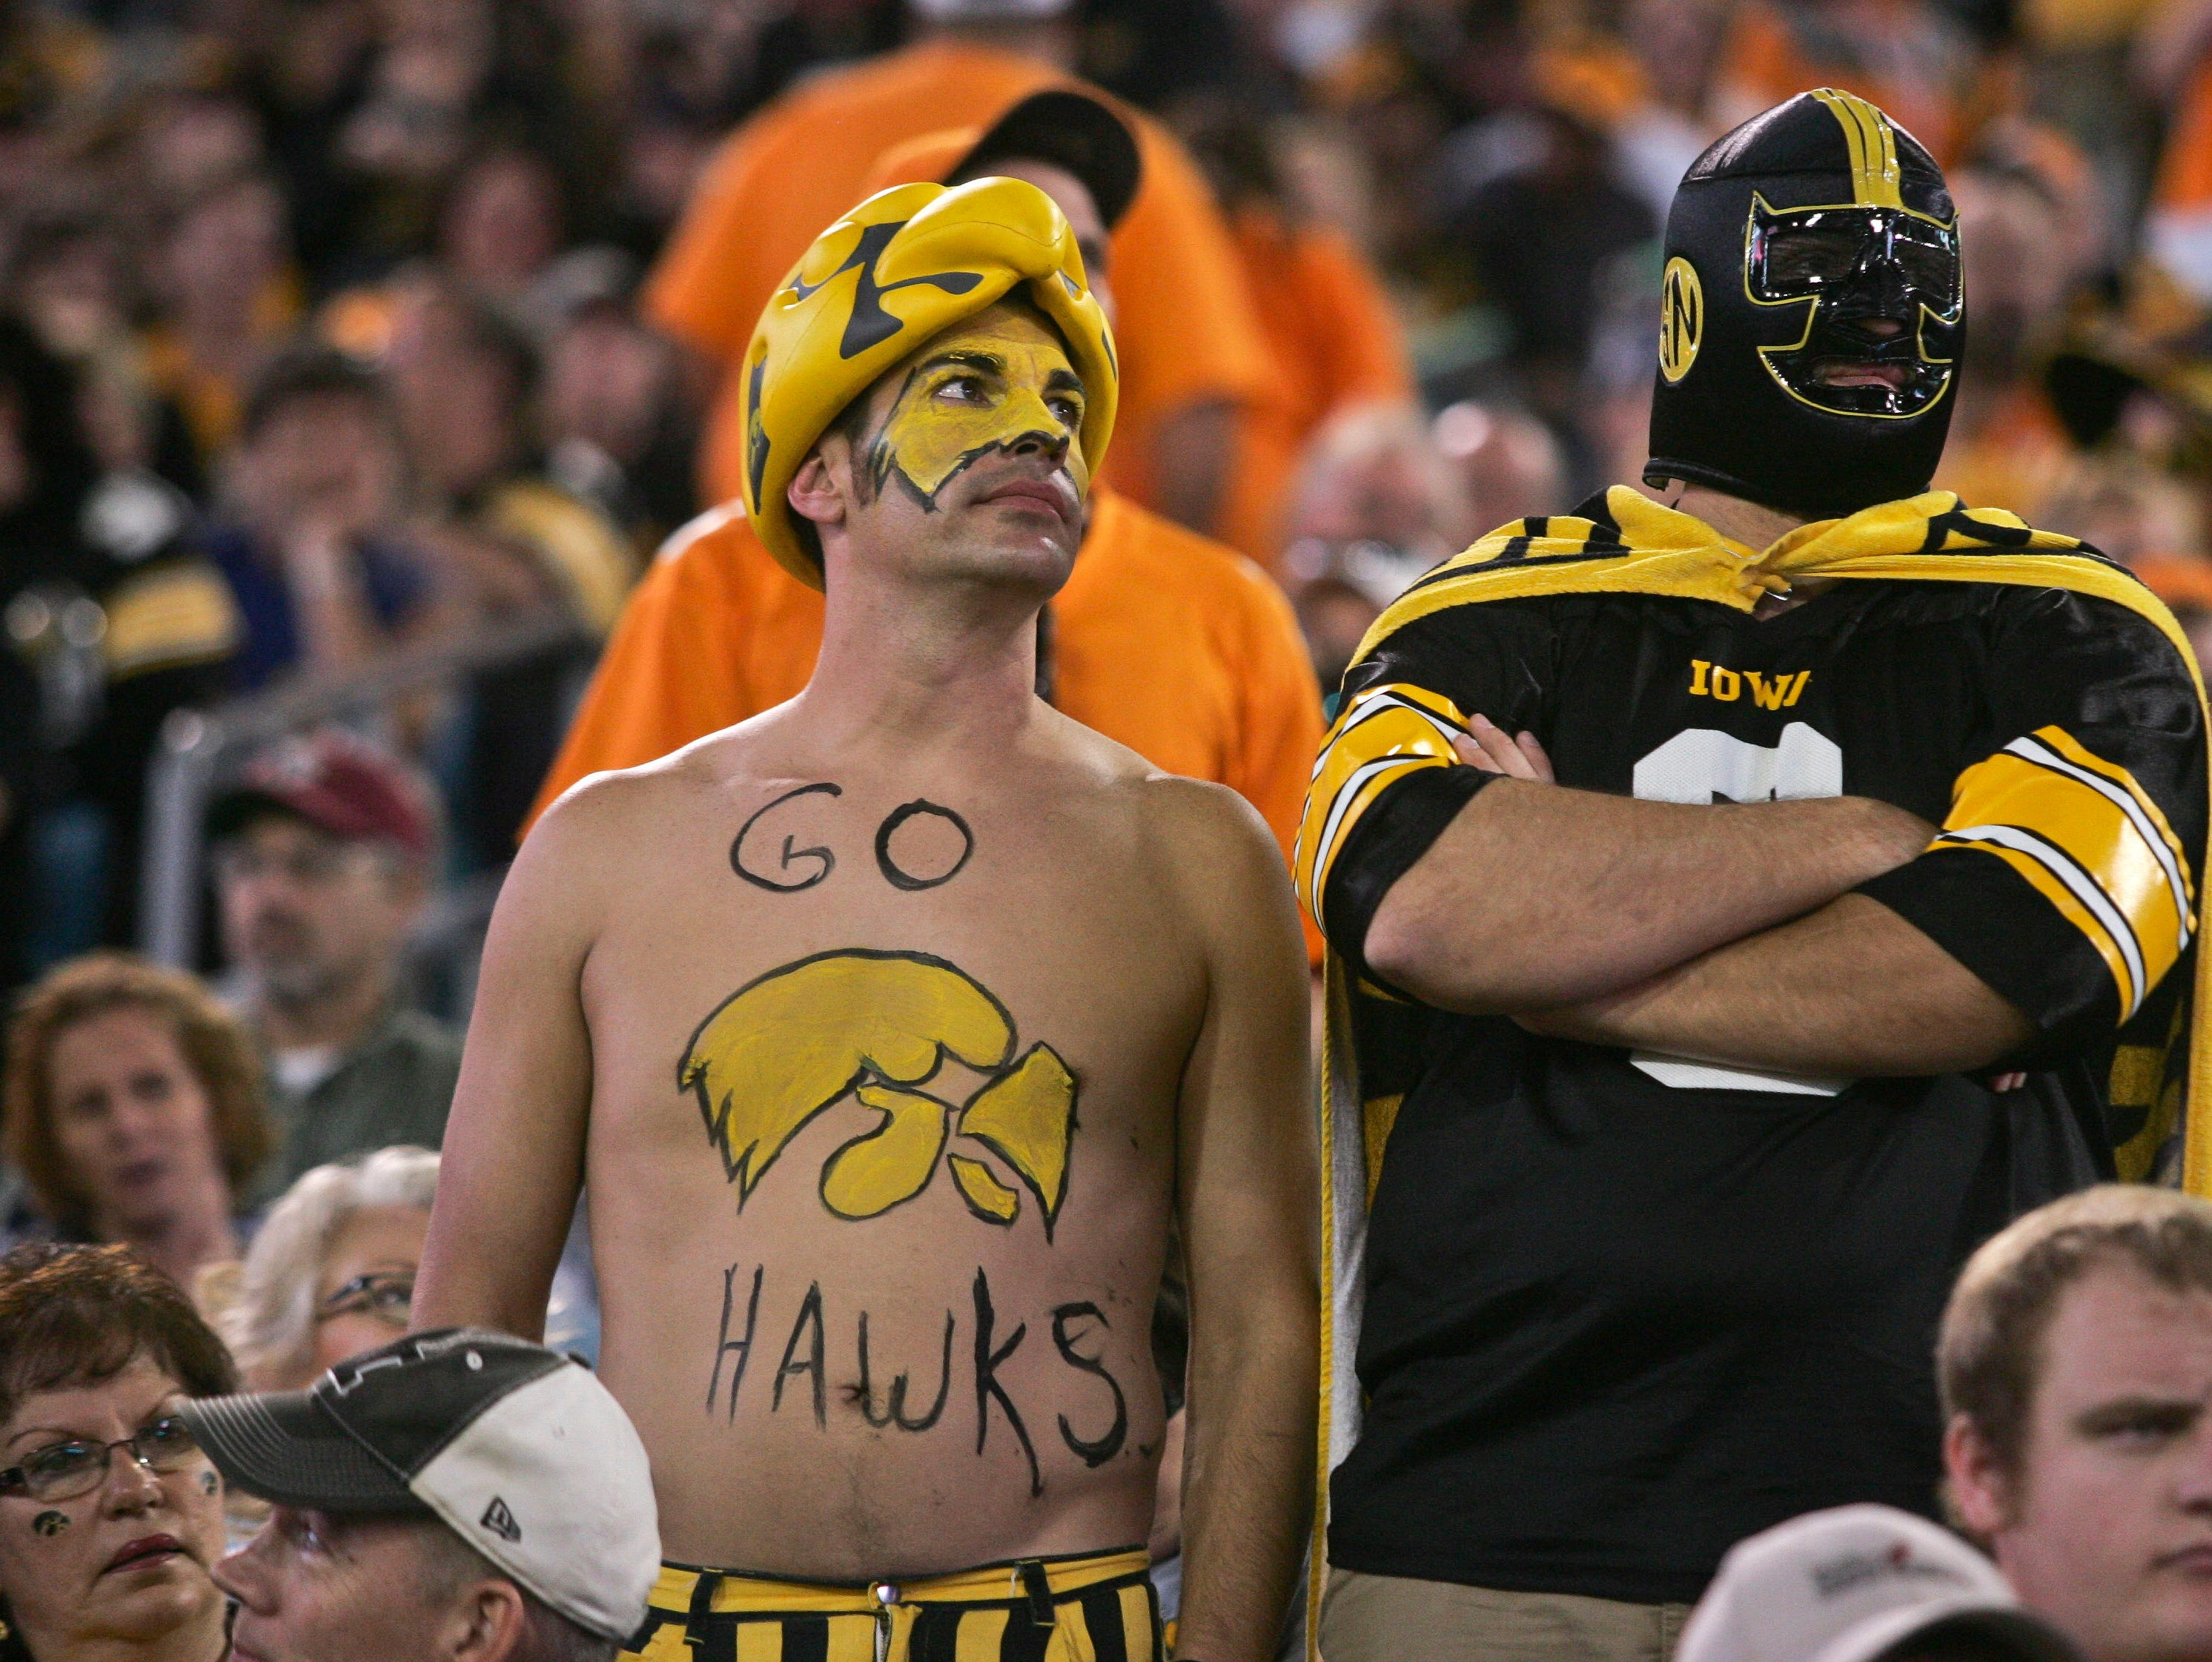 Jan 2, 2015; Jacksonville, FL, USA; Iowa Hawkeyes fans react in the fourth quarter of their 2015 TaxSlayer Bow game against the Tennessee Volunteersl at EverBank Field. The Tennessee Volunteers beat the Iowa Hawkeyes 45-28. Mandatory Credit: Phil Sears-USA TODAY Sports